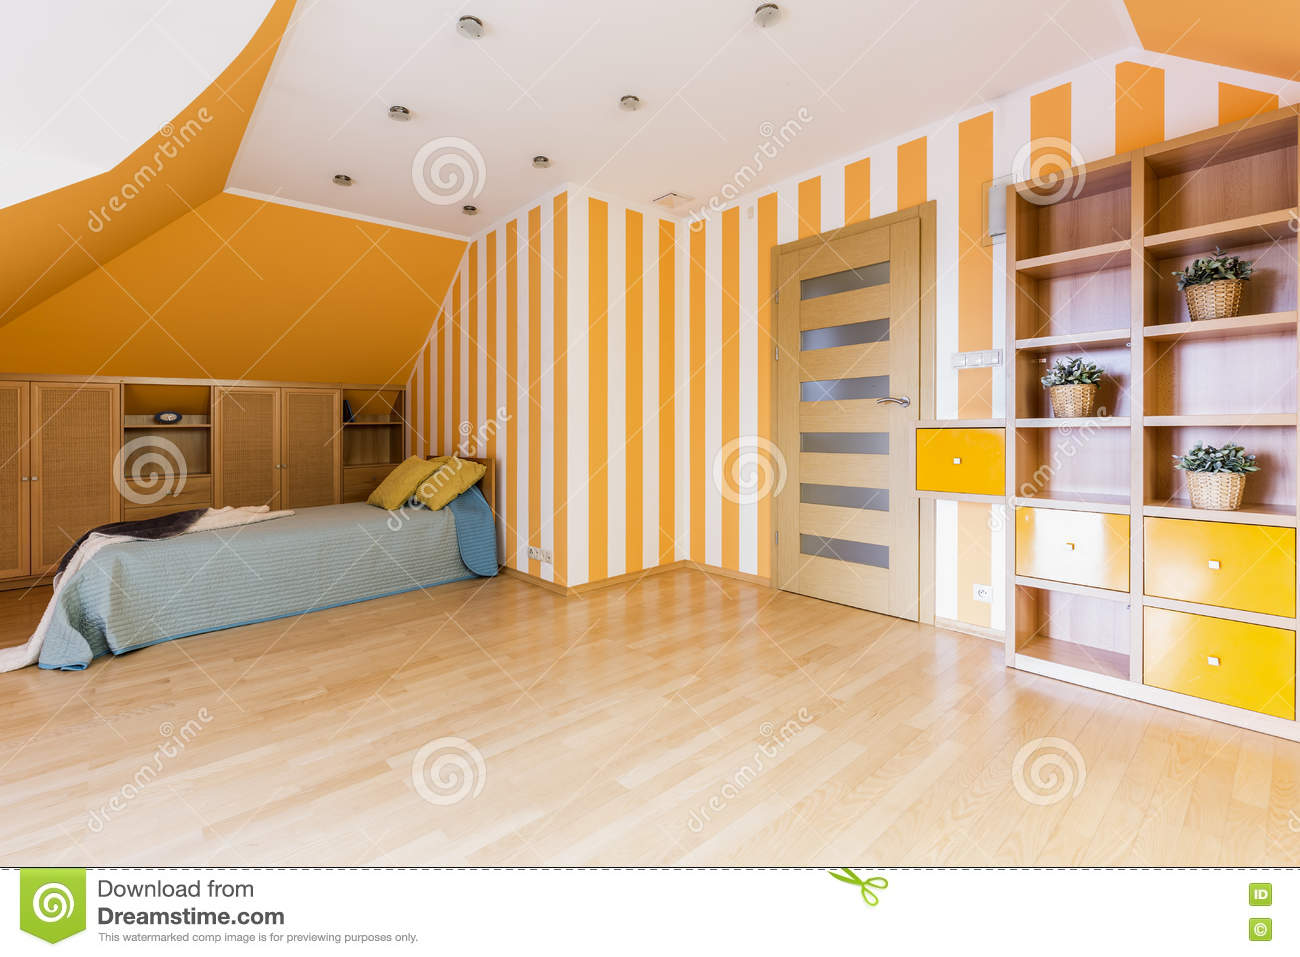 Energetic Bedroom In Orange And White Stock Image - Image of ...